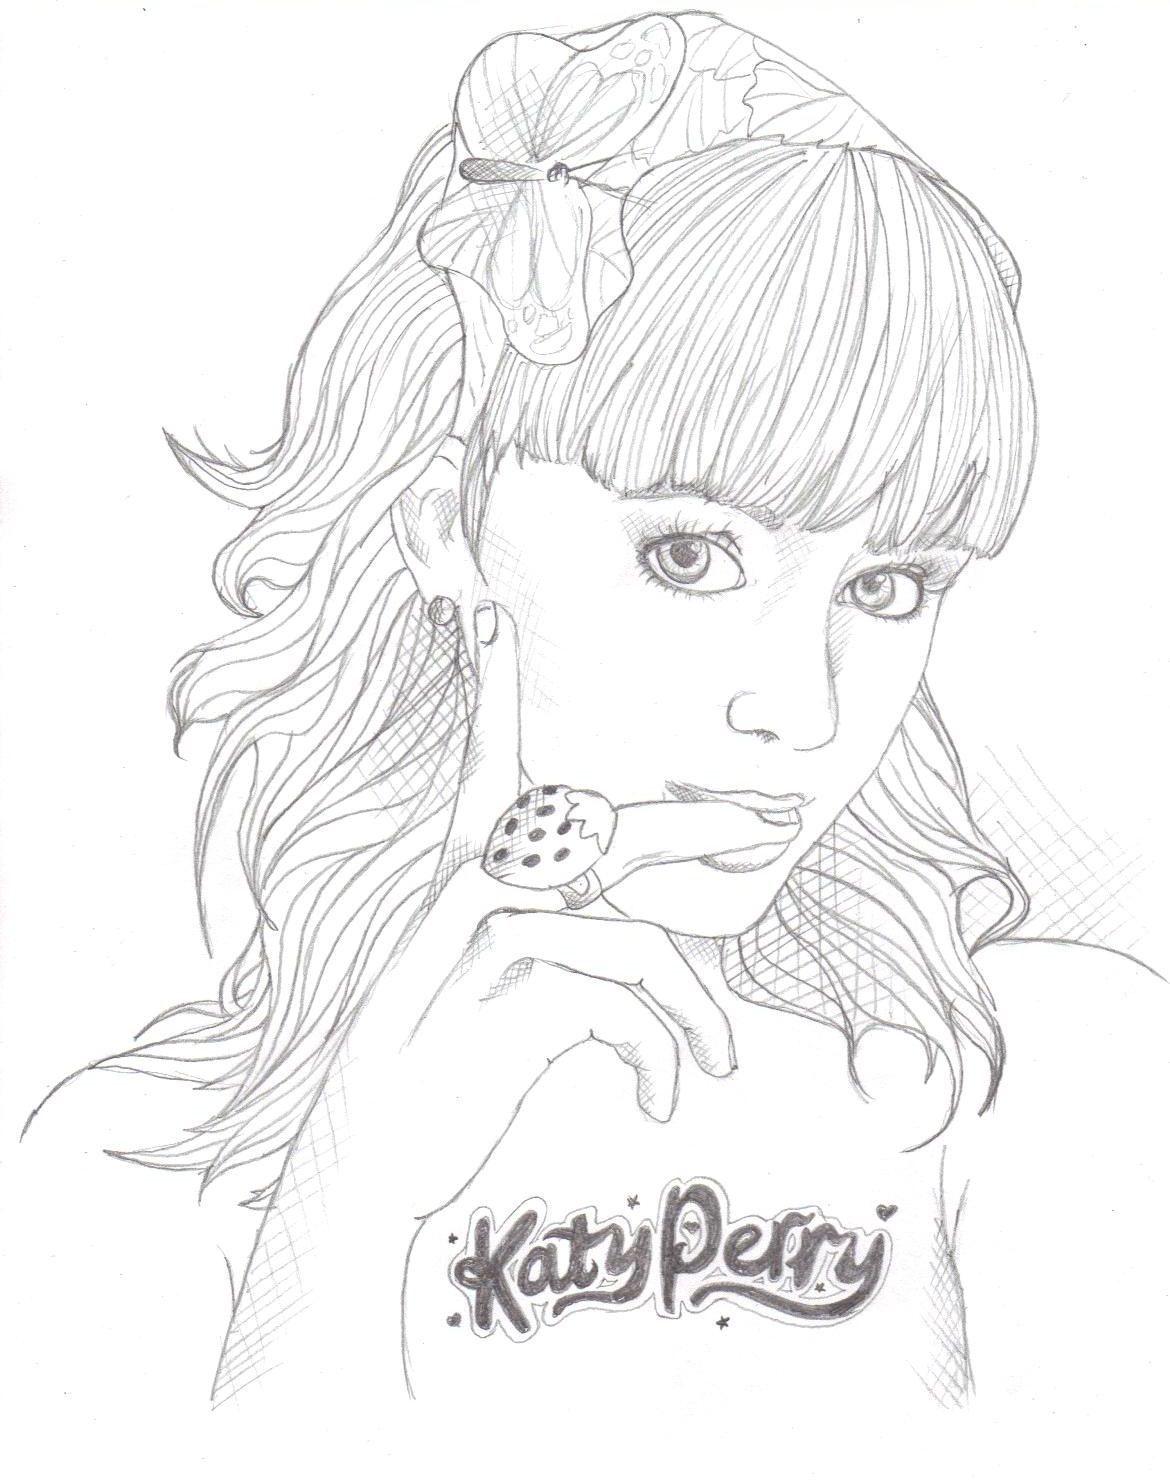 Coloring Pages Katy Perry Free Coloring Pages Coloring Pages Free Coloring Pages Free Coloring